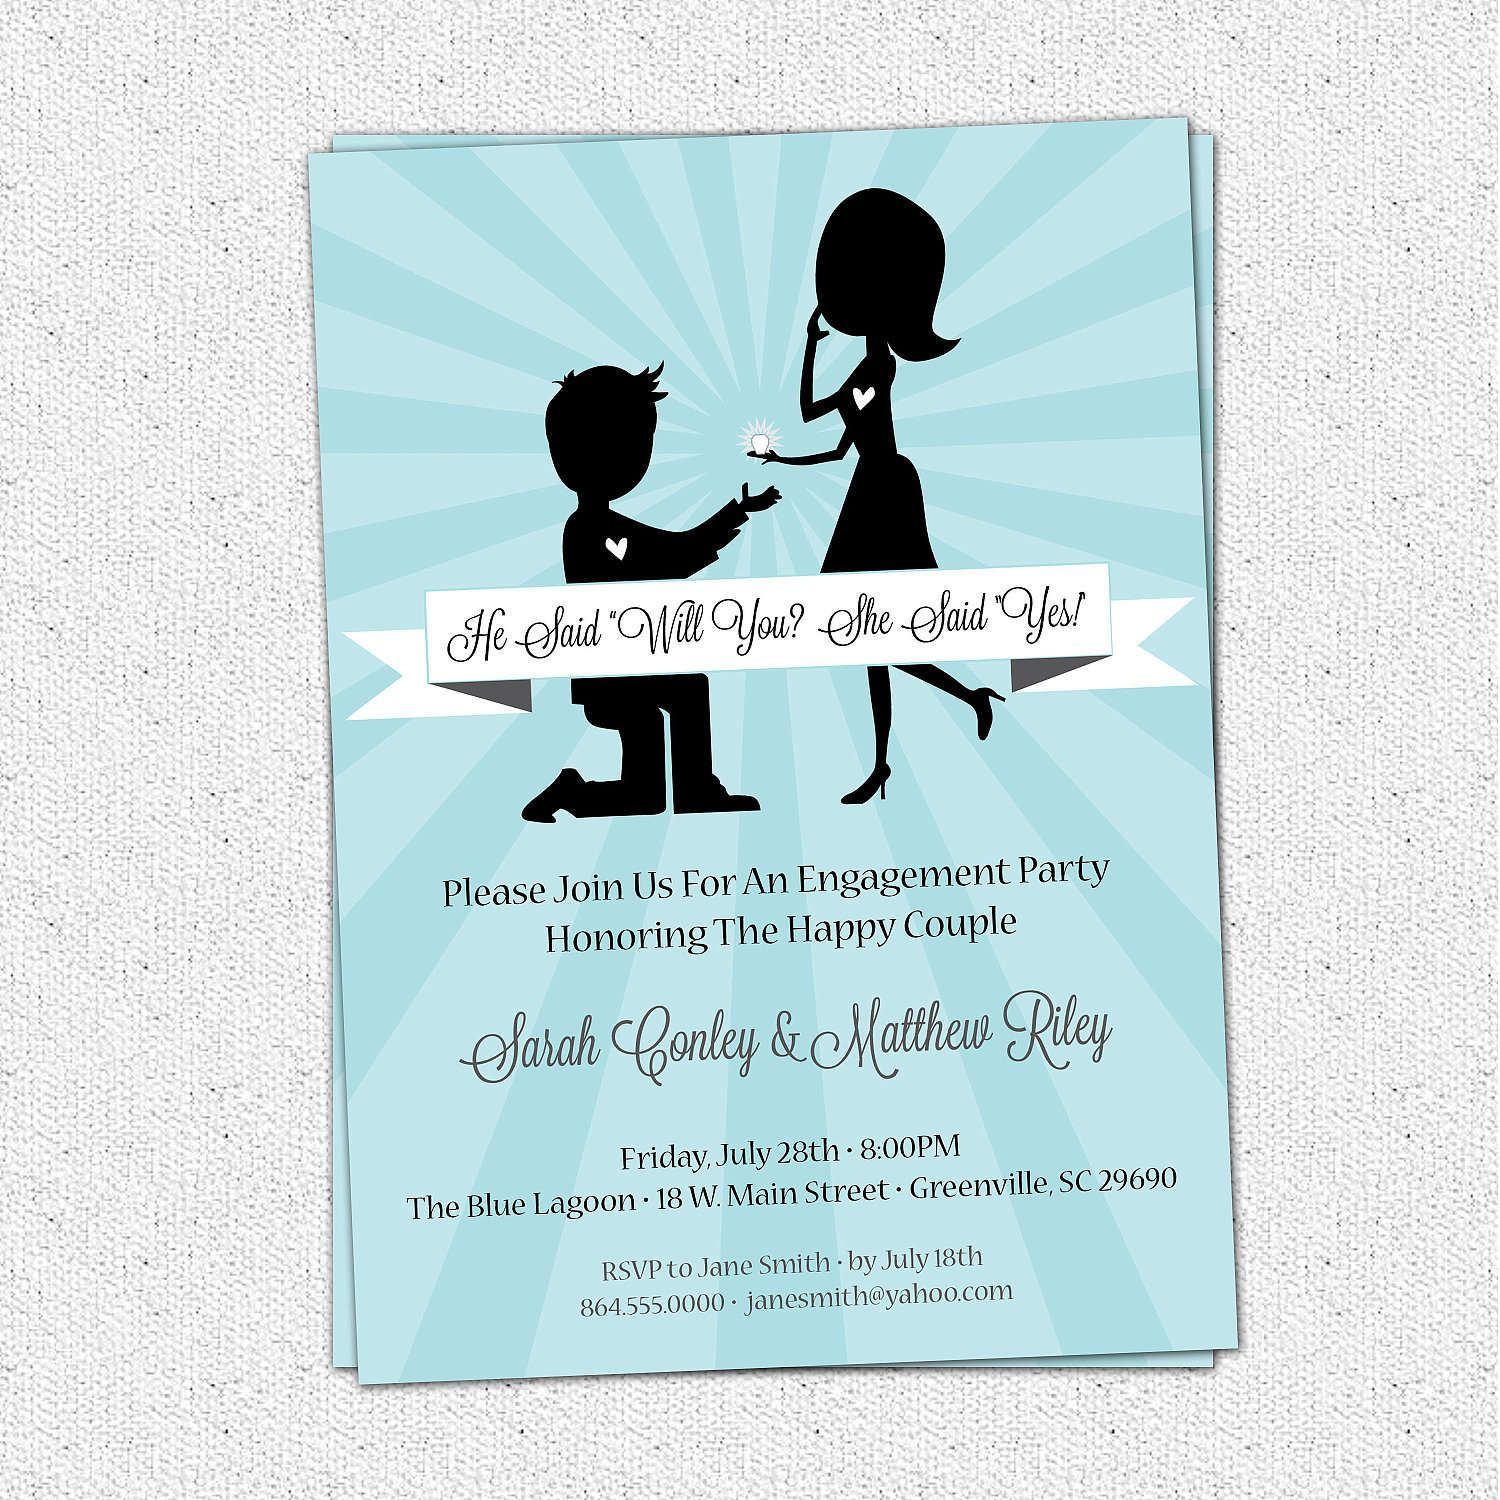 Engagement Party Invitation Templates  Engagement Invitations Online Templates